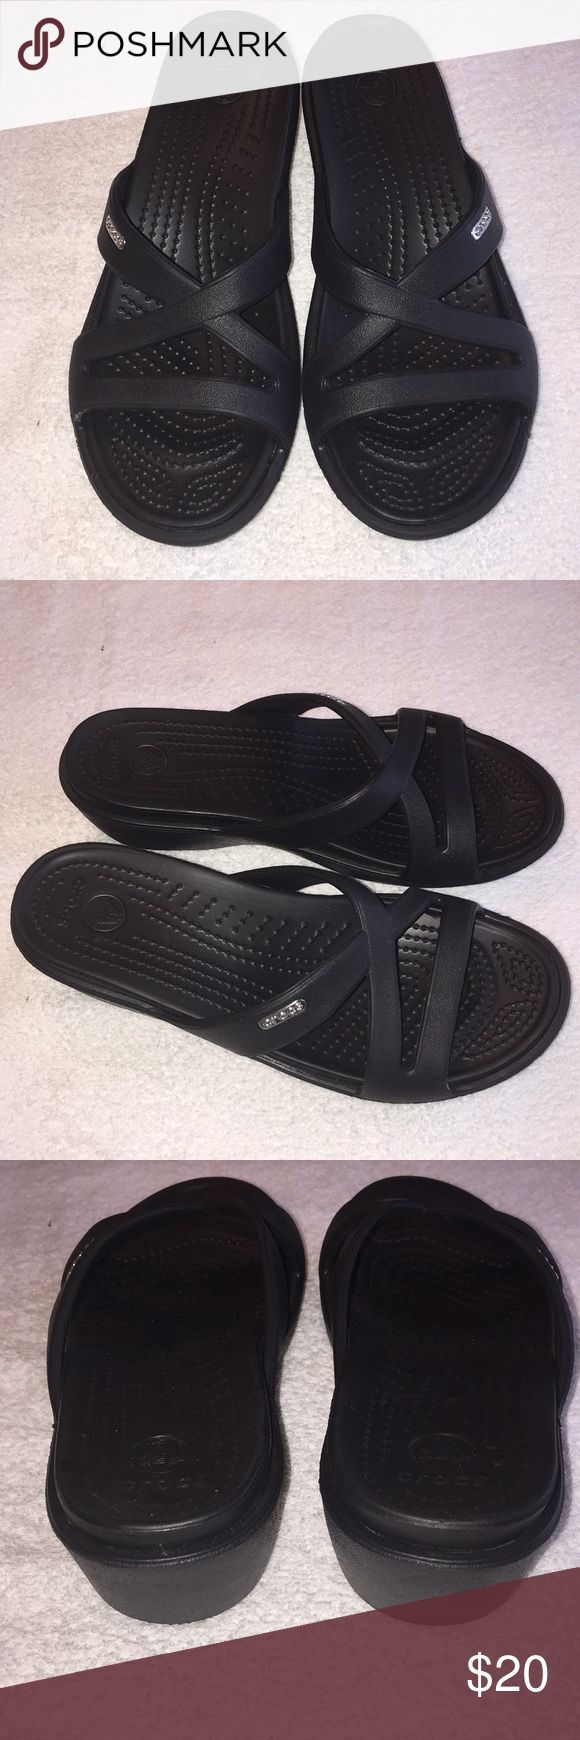 Women's Crocs brand sandals size 7. This is a pair of women's Crocs brand sandals size 7. They have been worn only a few times and are in good shape. They are black in color. If you have any questions please let me. Thanks! Shoes Sandals